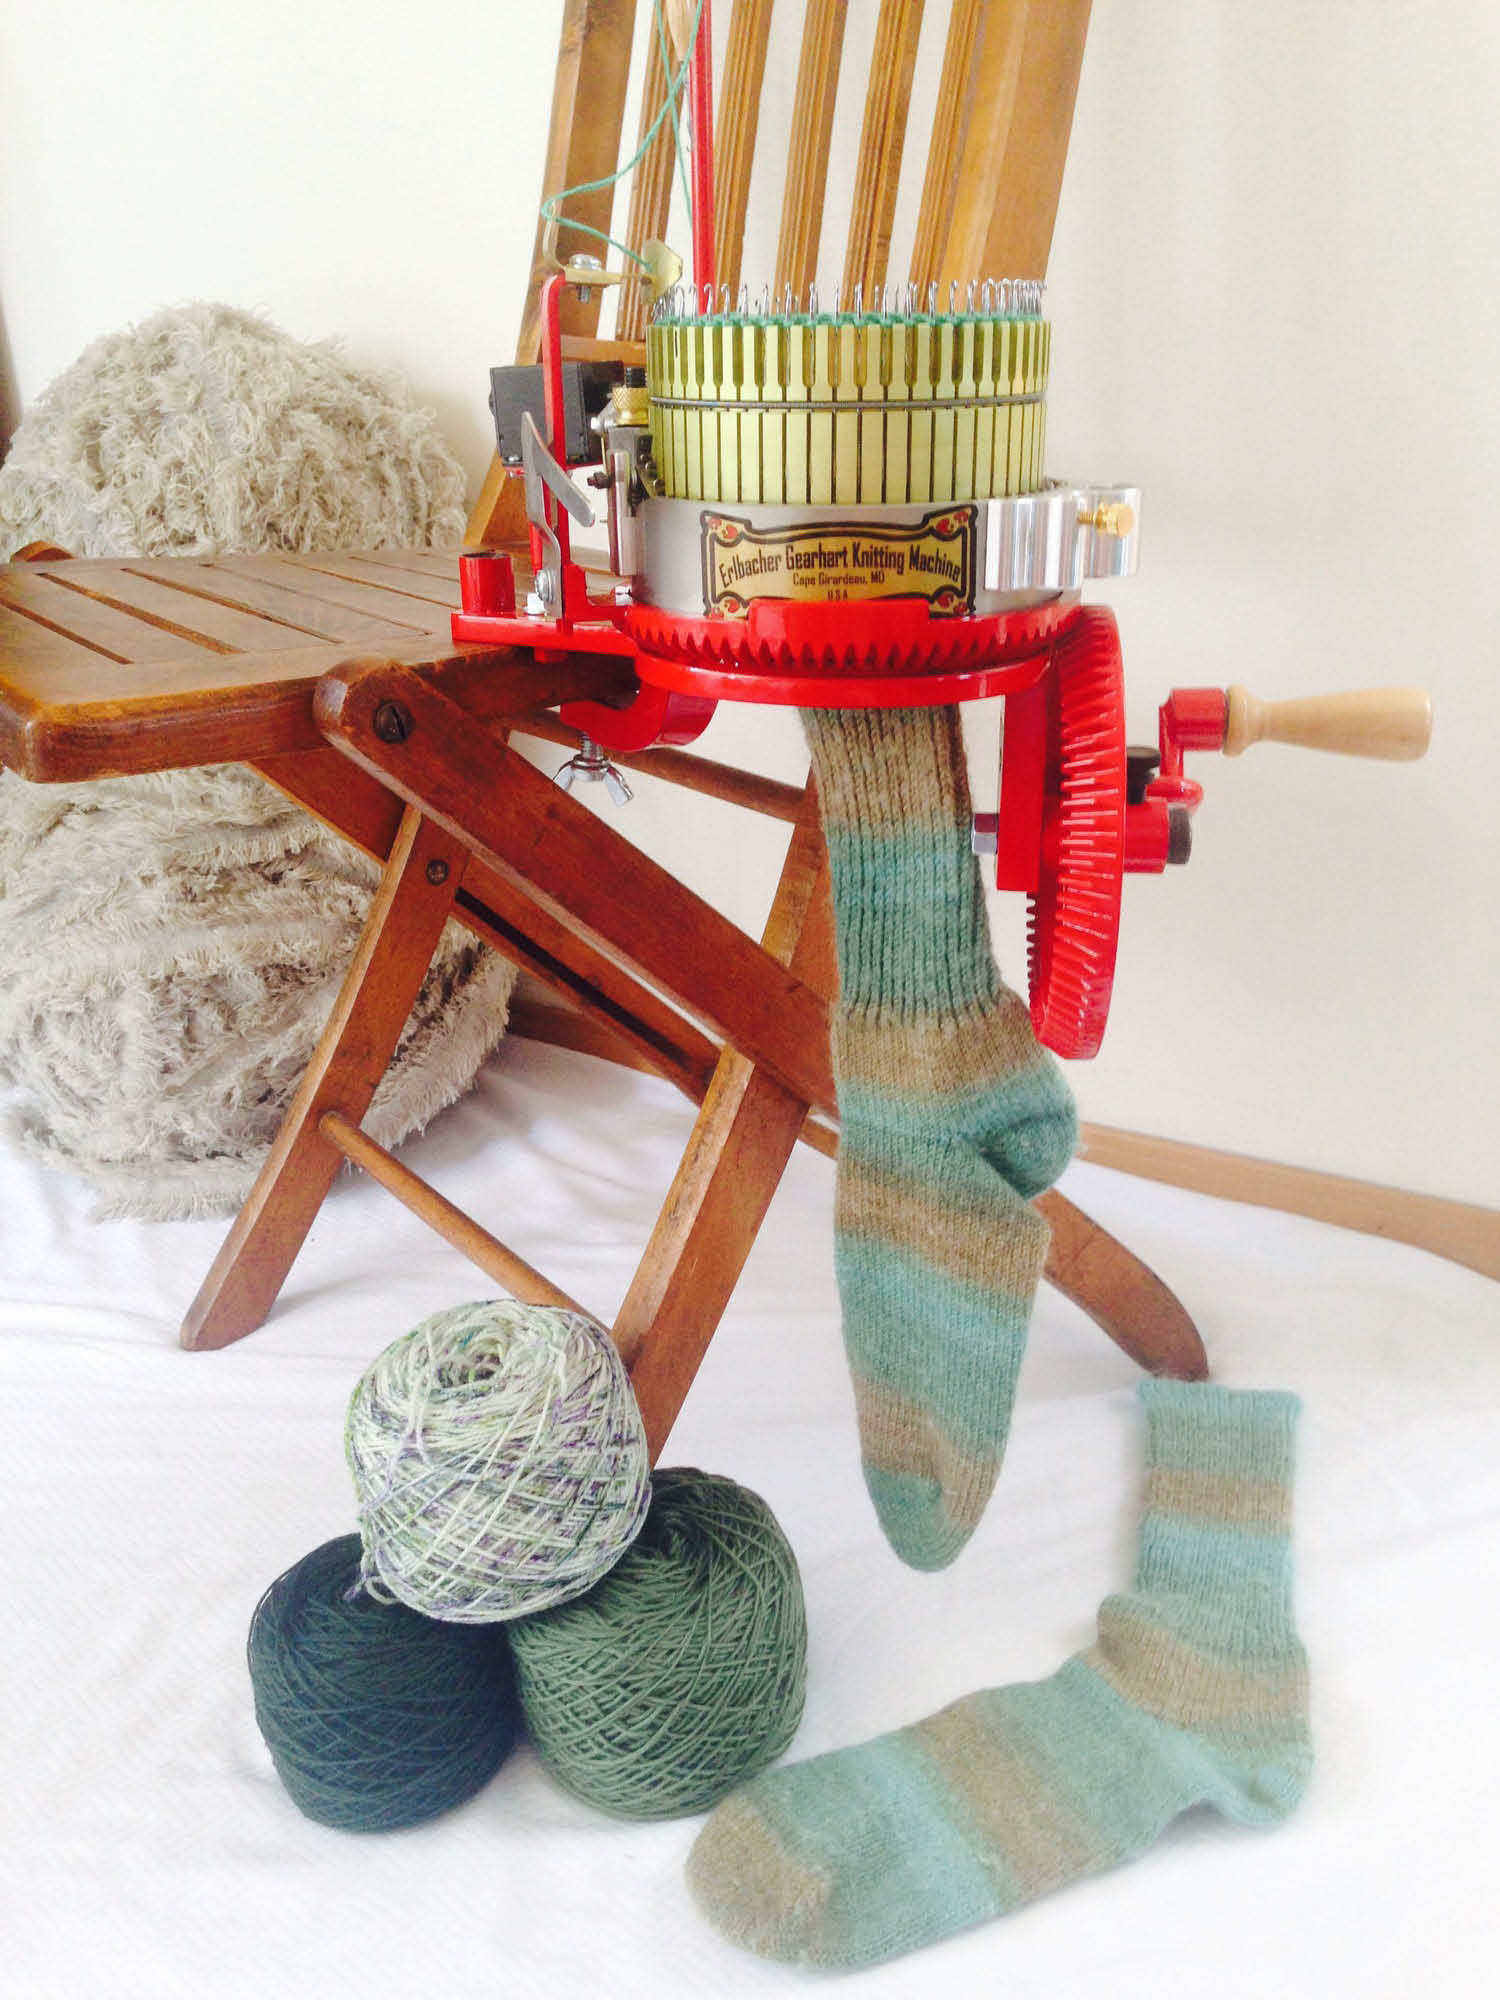 Circular sock machine to knit your own socks - The Sock Peddlers - Lakewood, WA